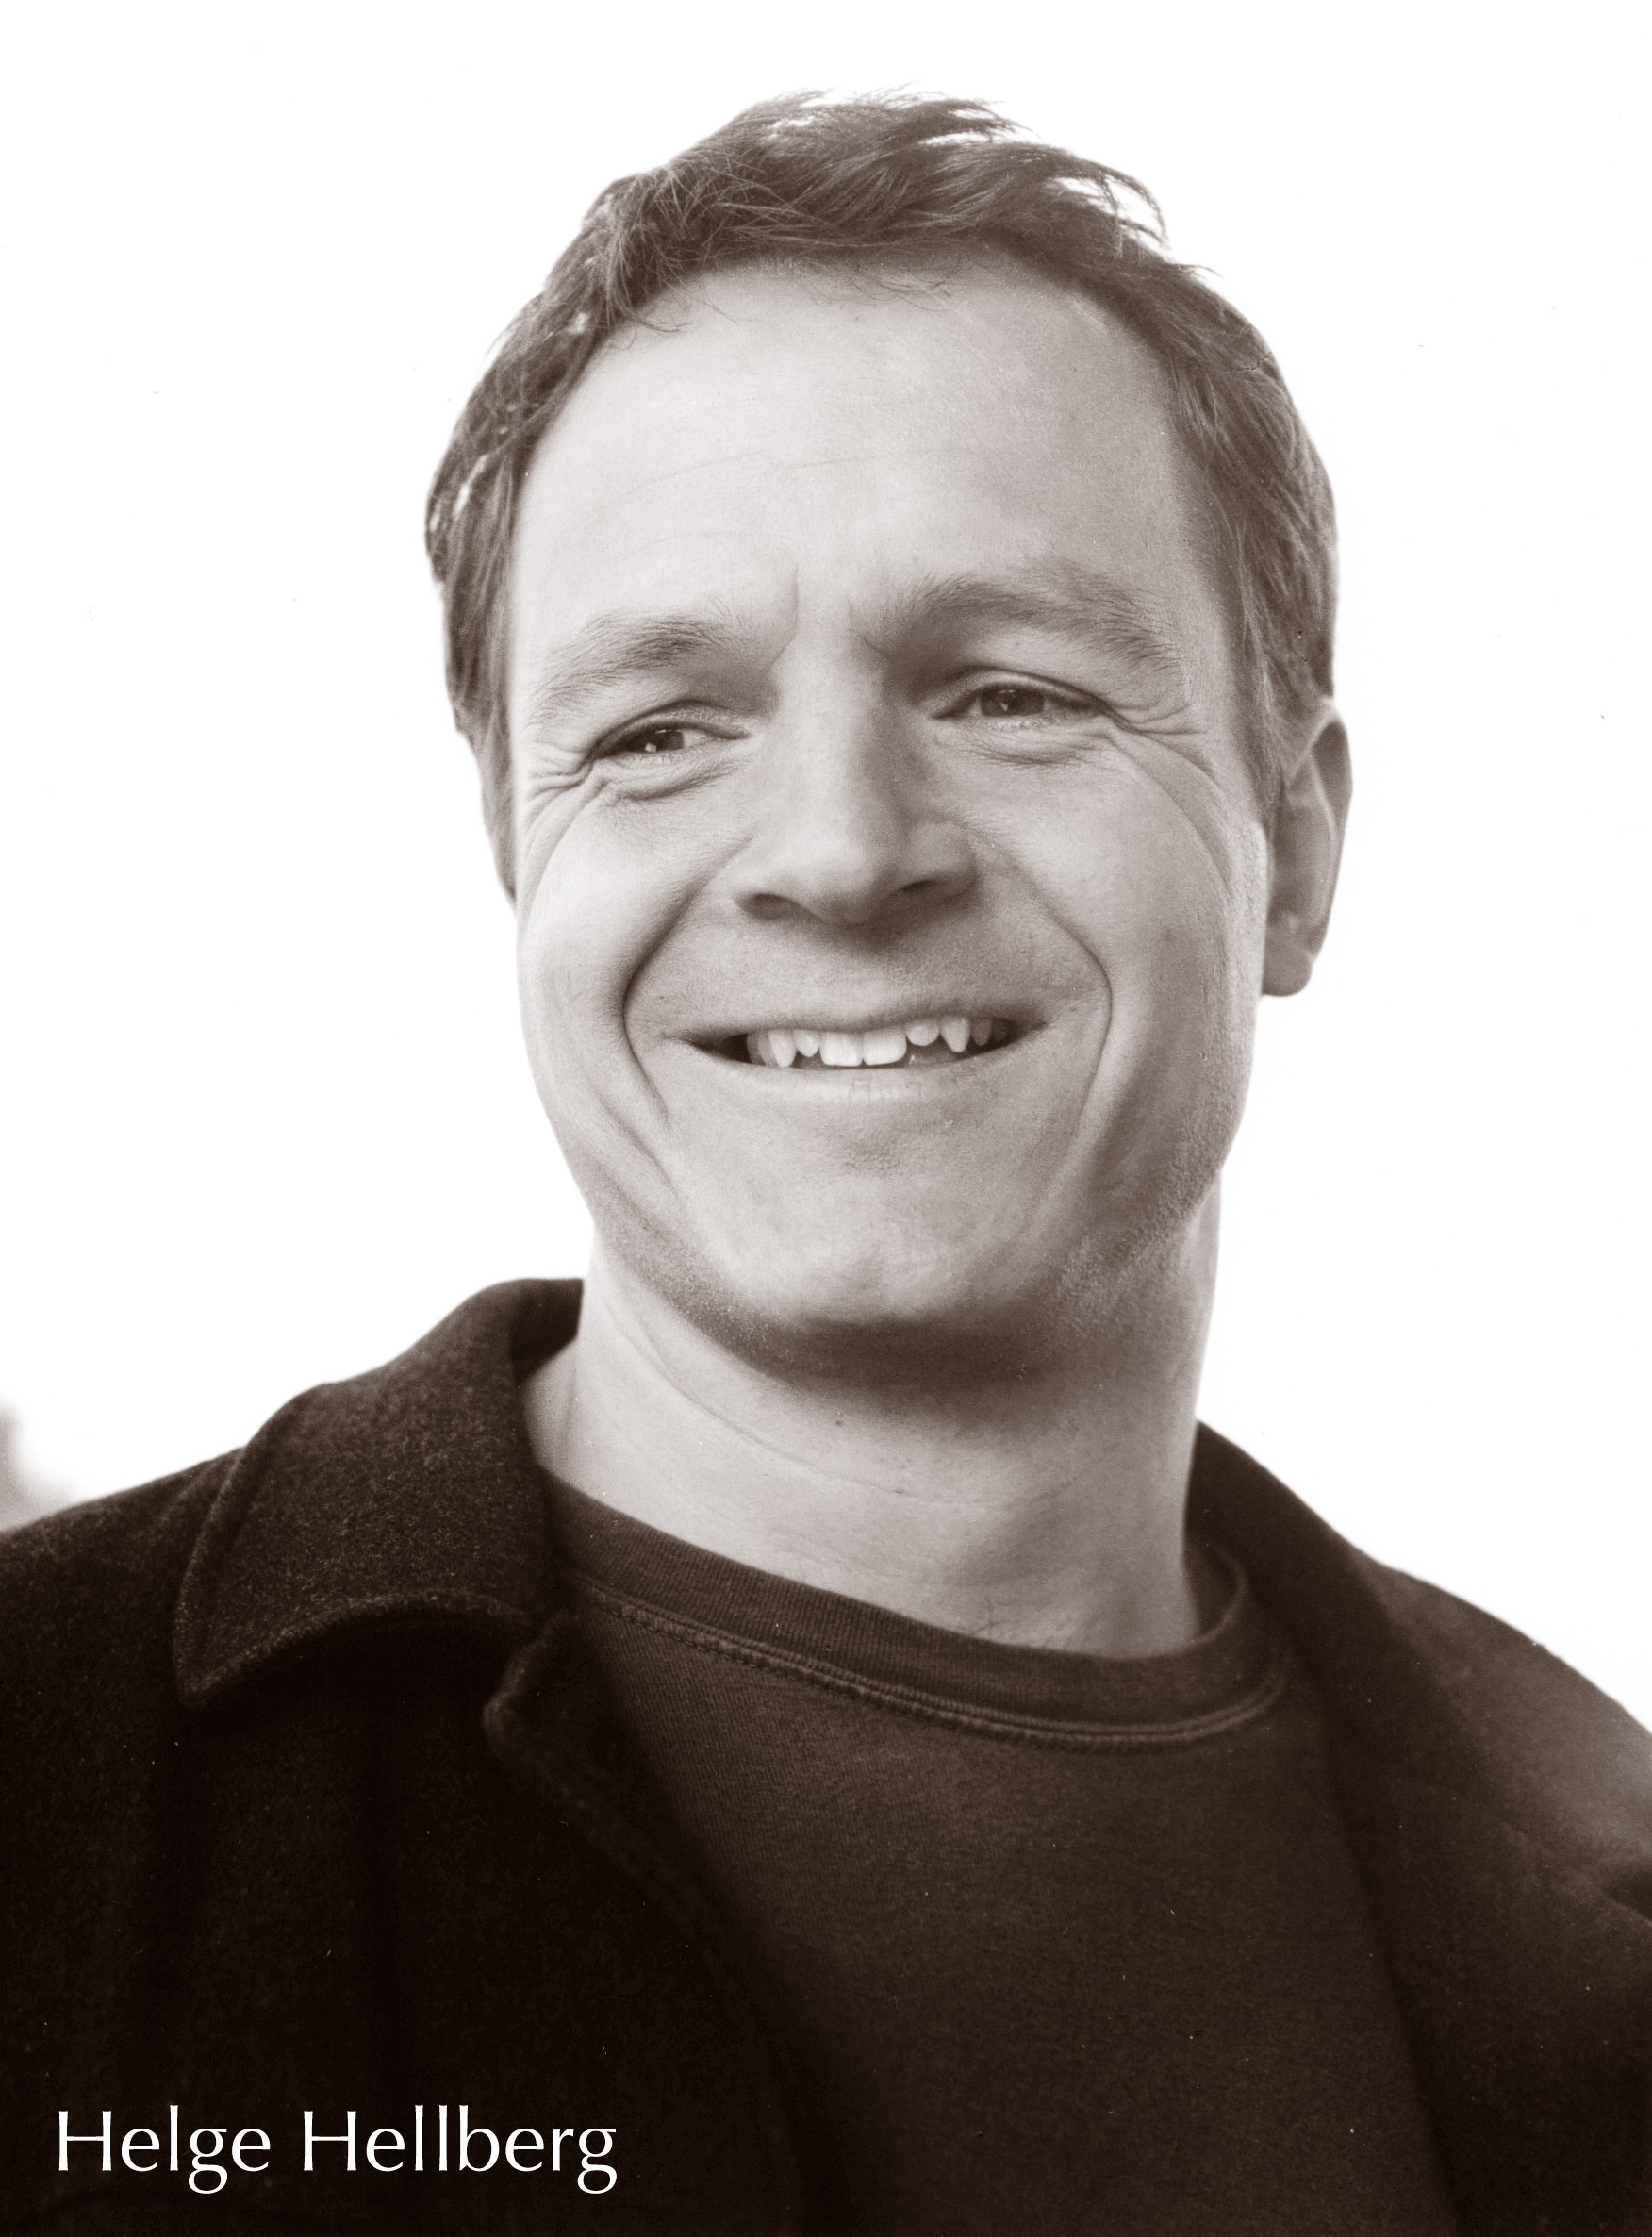 Helge Hellberg, March 15' cohort of tech startup founders